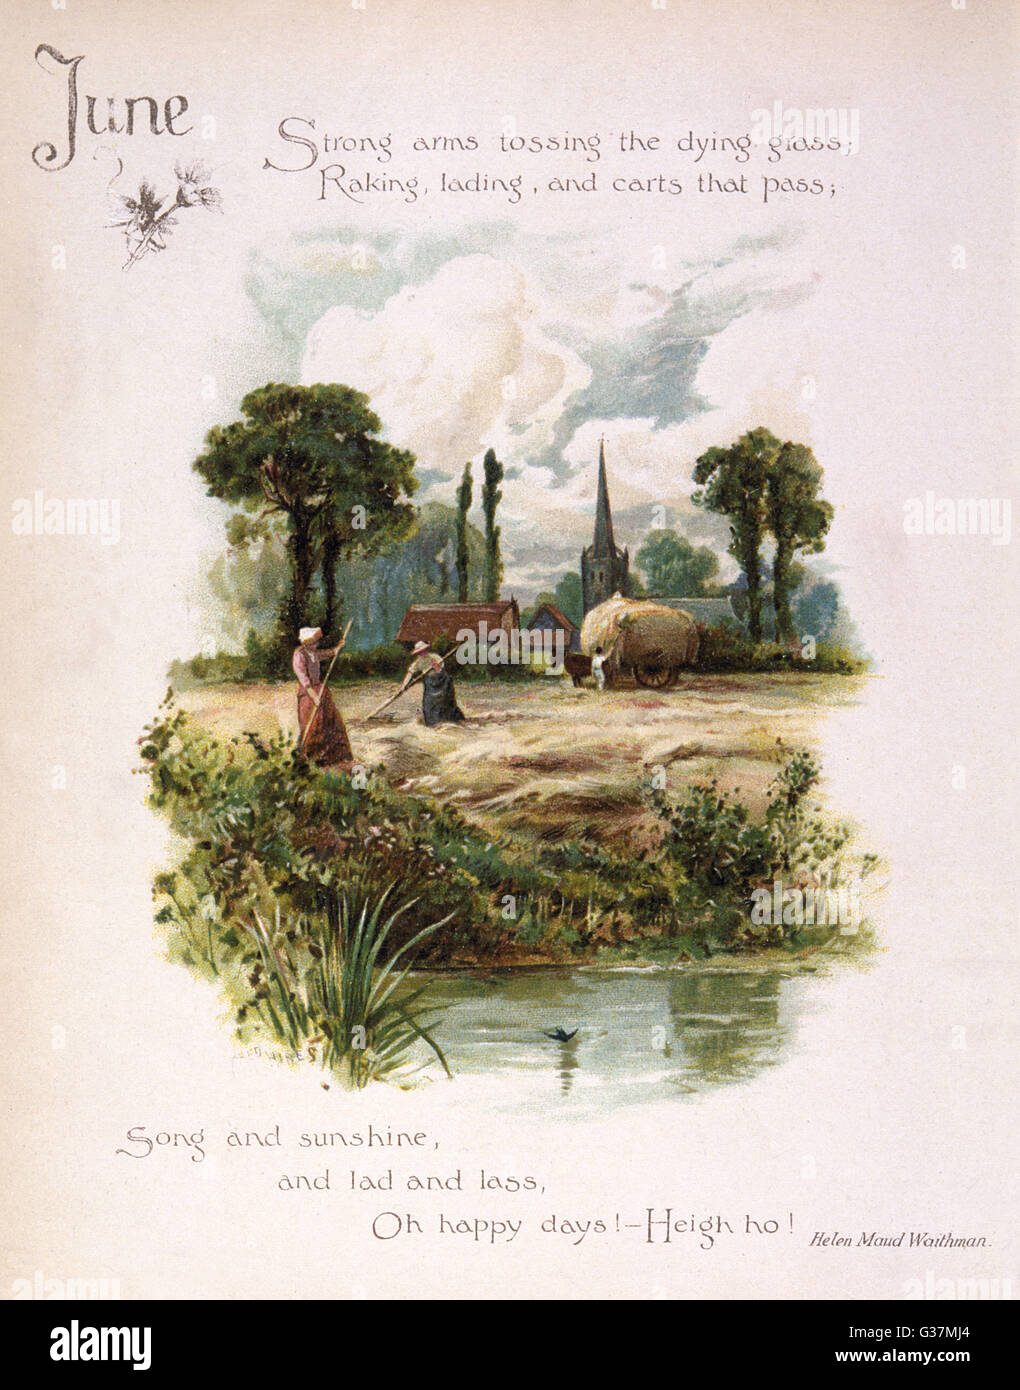 Book illustration -- June, with a haymaking scene.      Date: circa 1880 - Stock Image